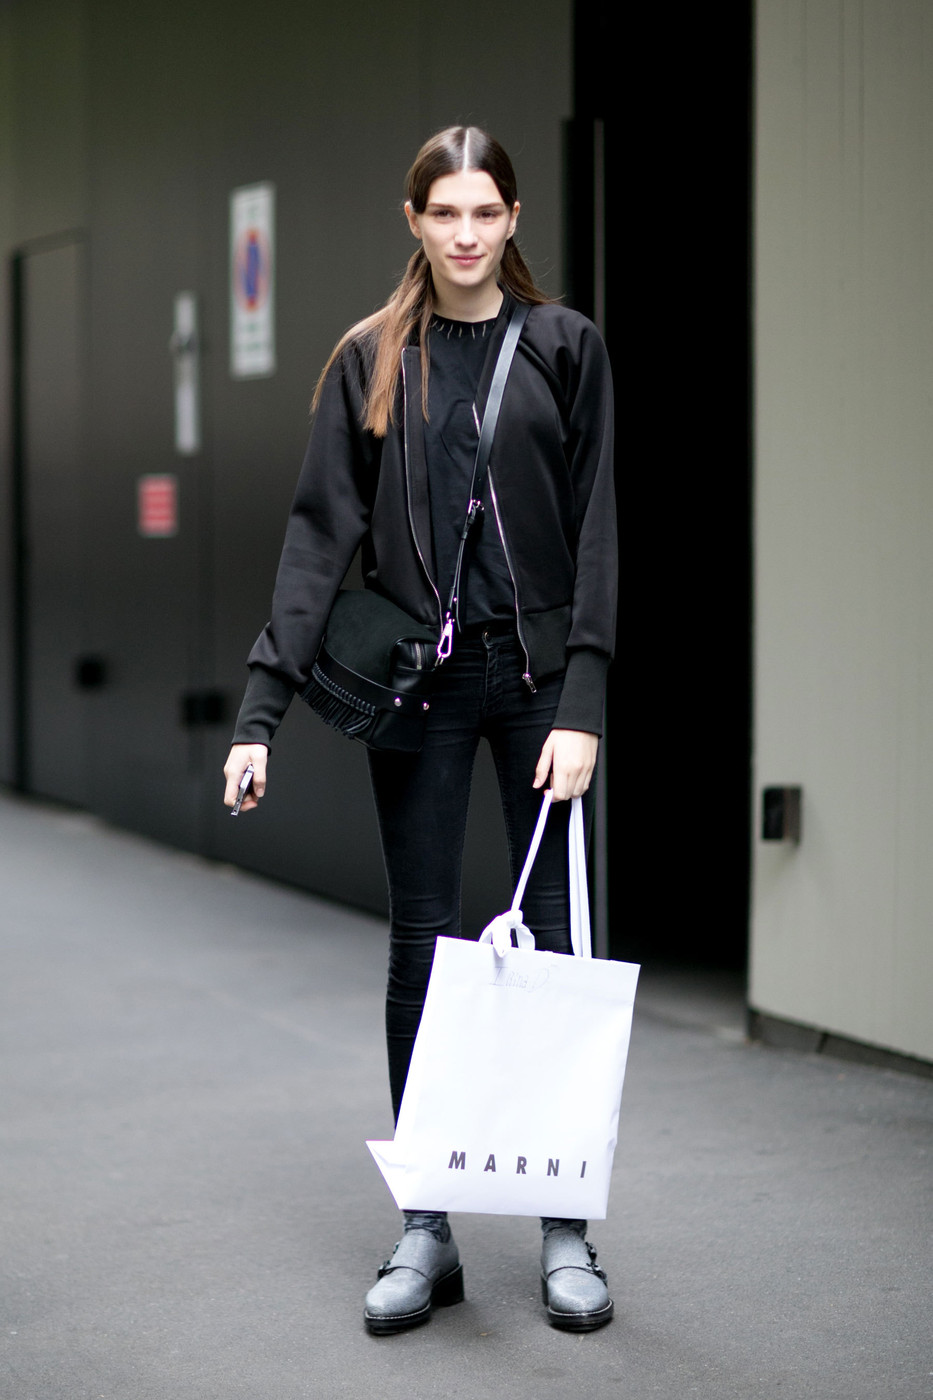 The Basic Model Wardrobe: 10 Must-Have Pieces